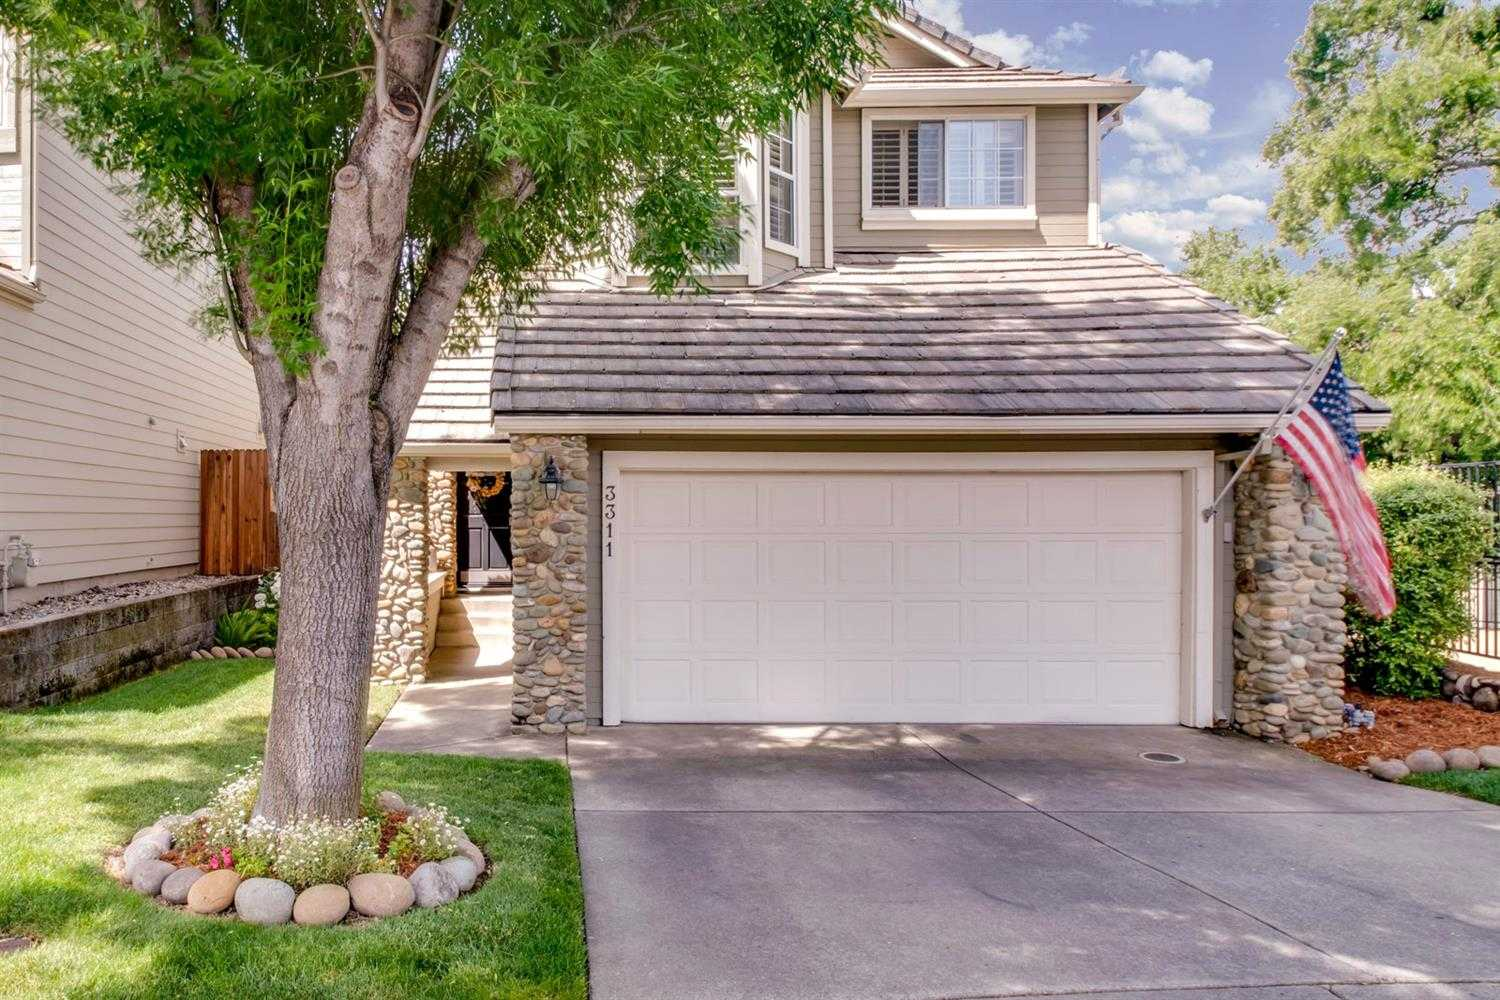 3311 Stanford Village Ct Rocklin, CA 95765